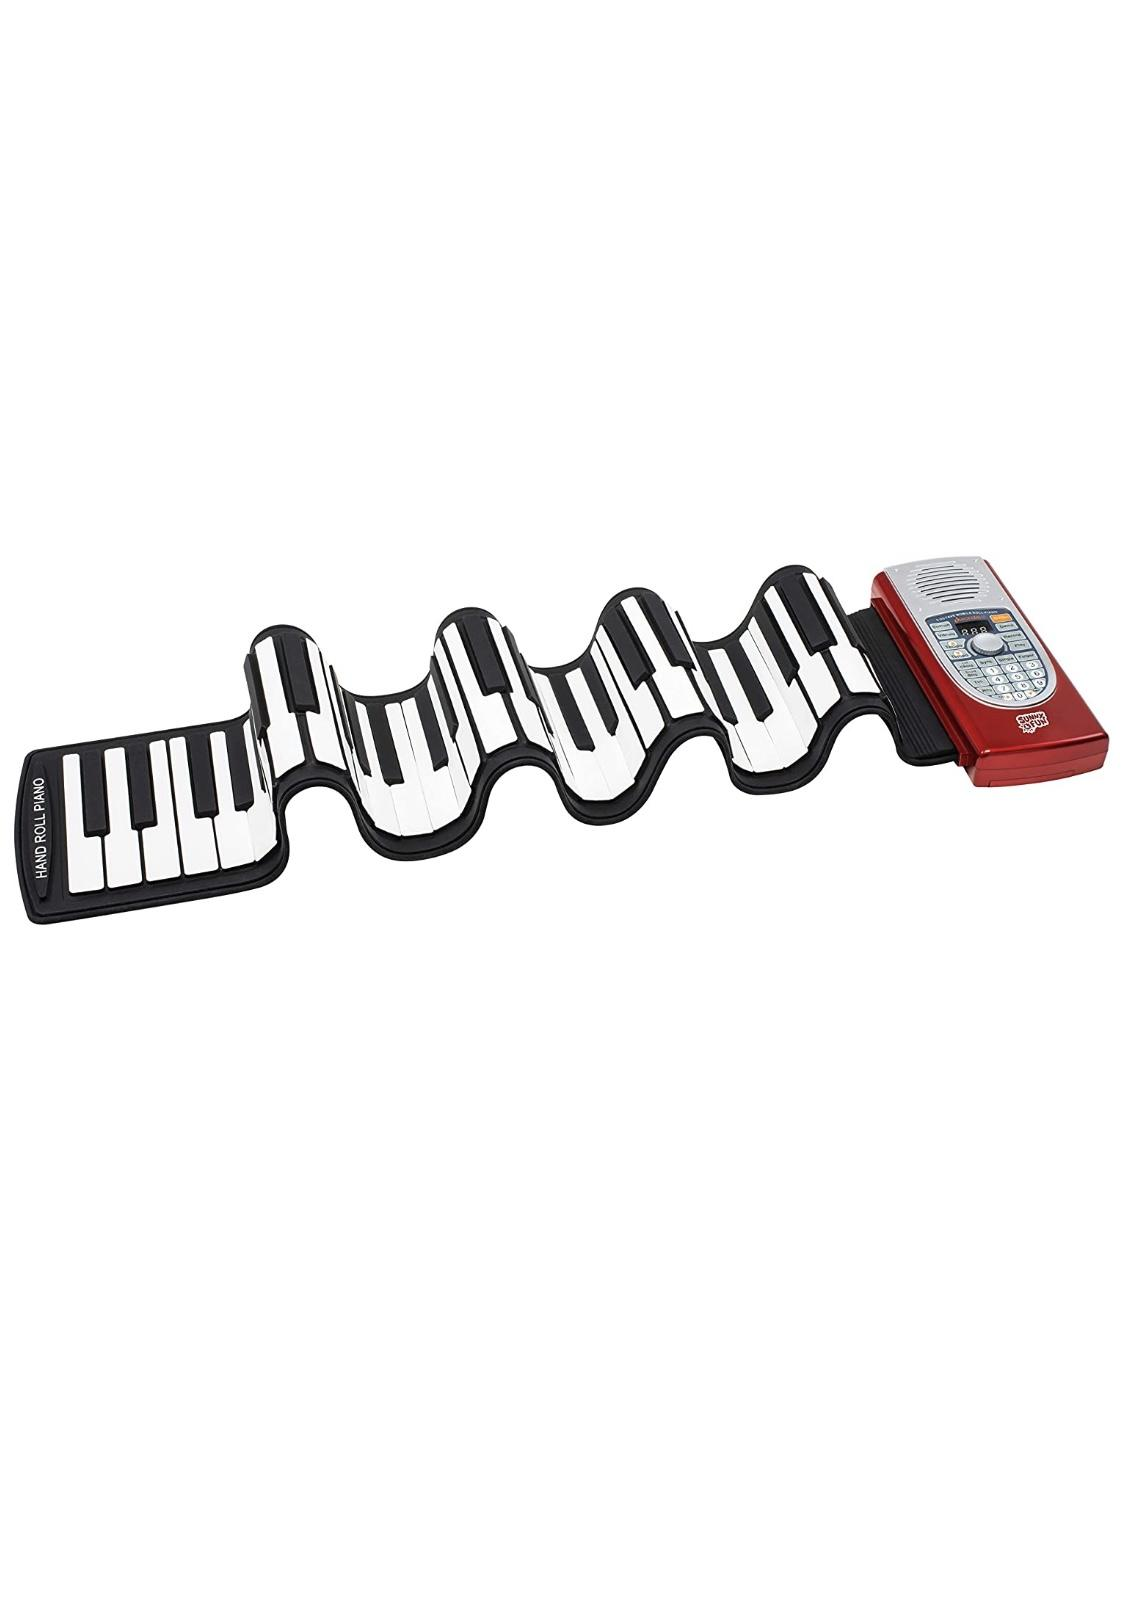 Foldable piano for adults or kids with countless o